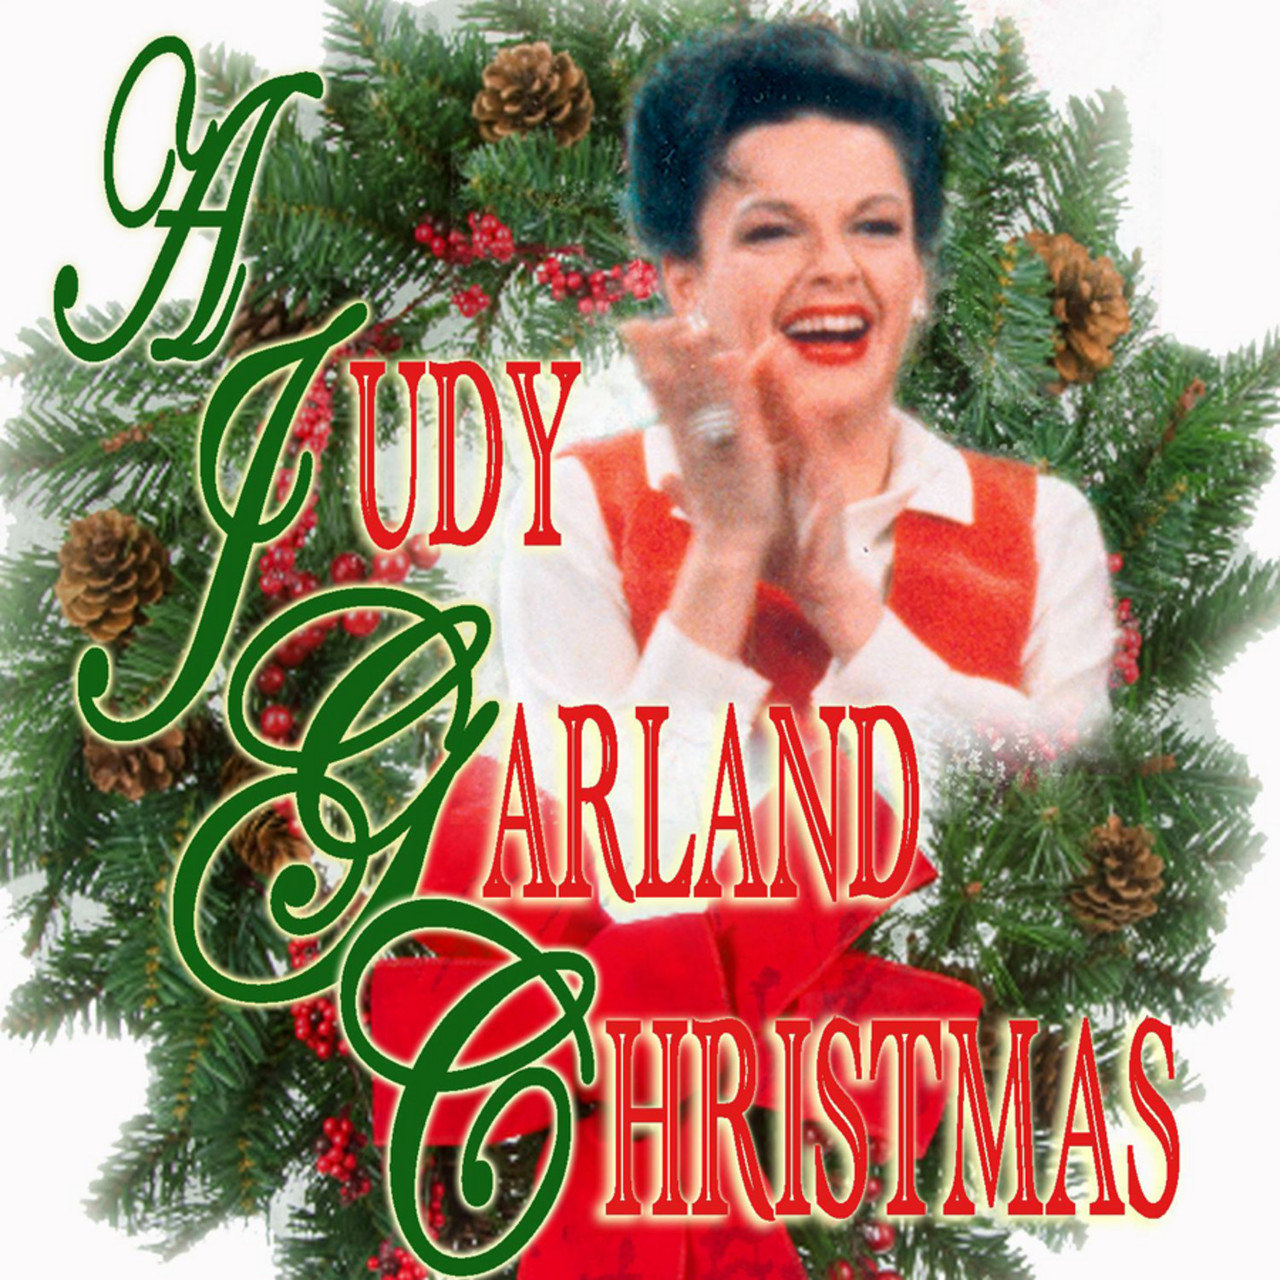 TIDAL: Listen to A Judy Garland Christmas on TIDAL